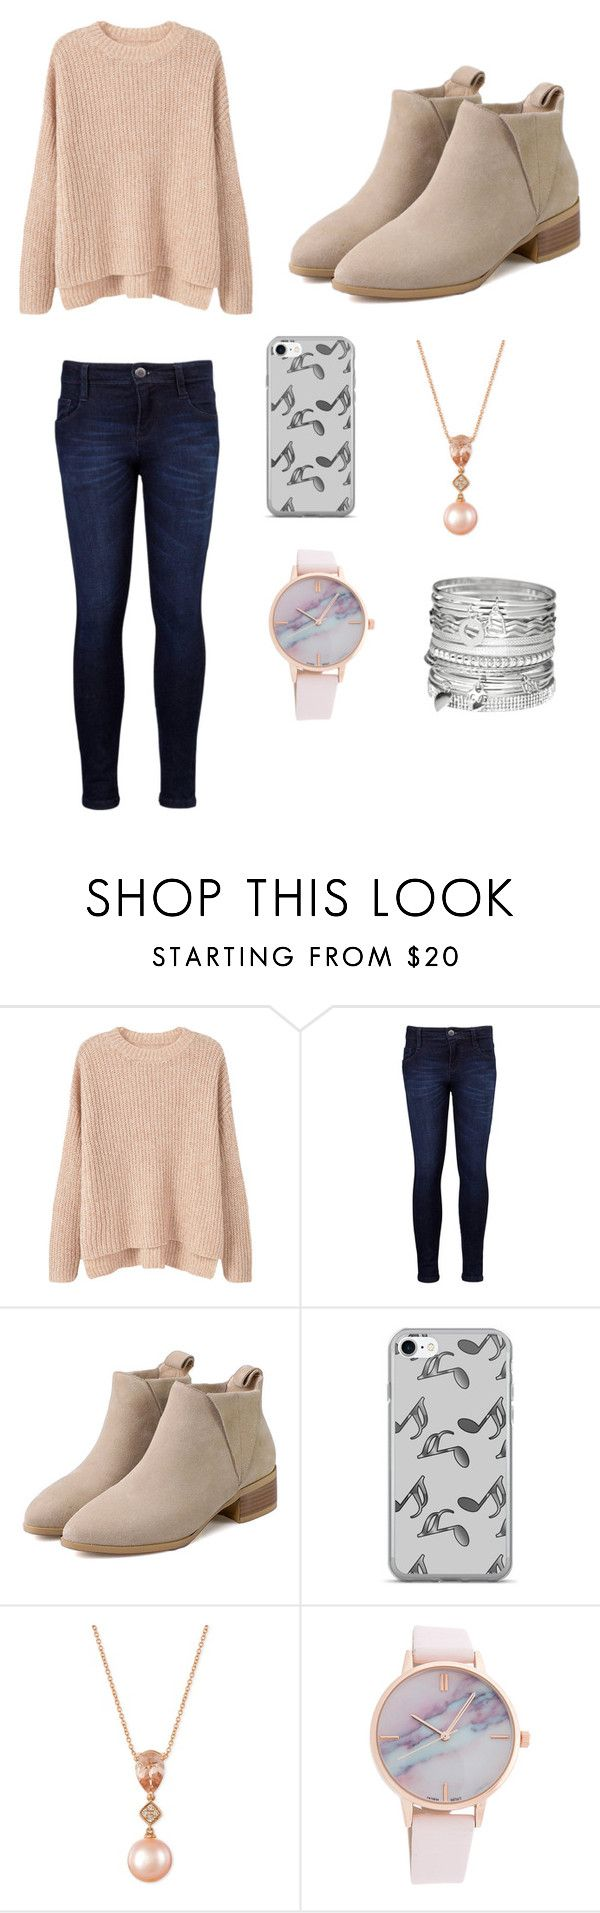 """""""Chic and stylish outfit for a school day that may be good or not. An everyday outfit."""" by sashalong ❤ liked on Polyvore featuring MANGO, Levi's, Music Notes, LE VIAN and Avenue"""